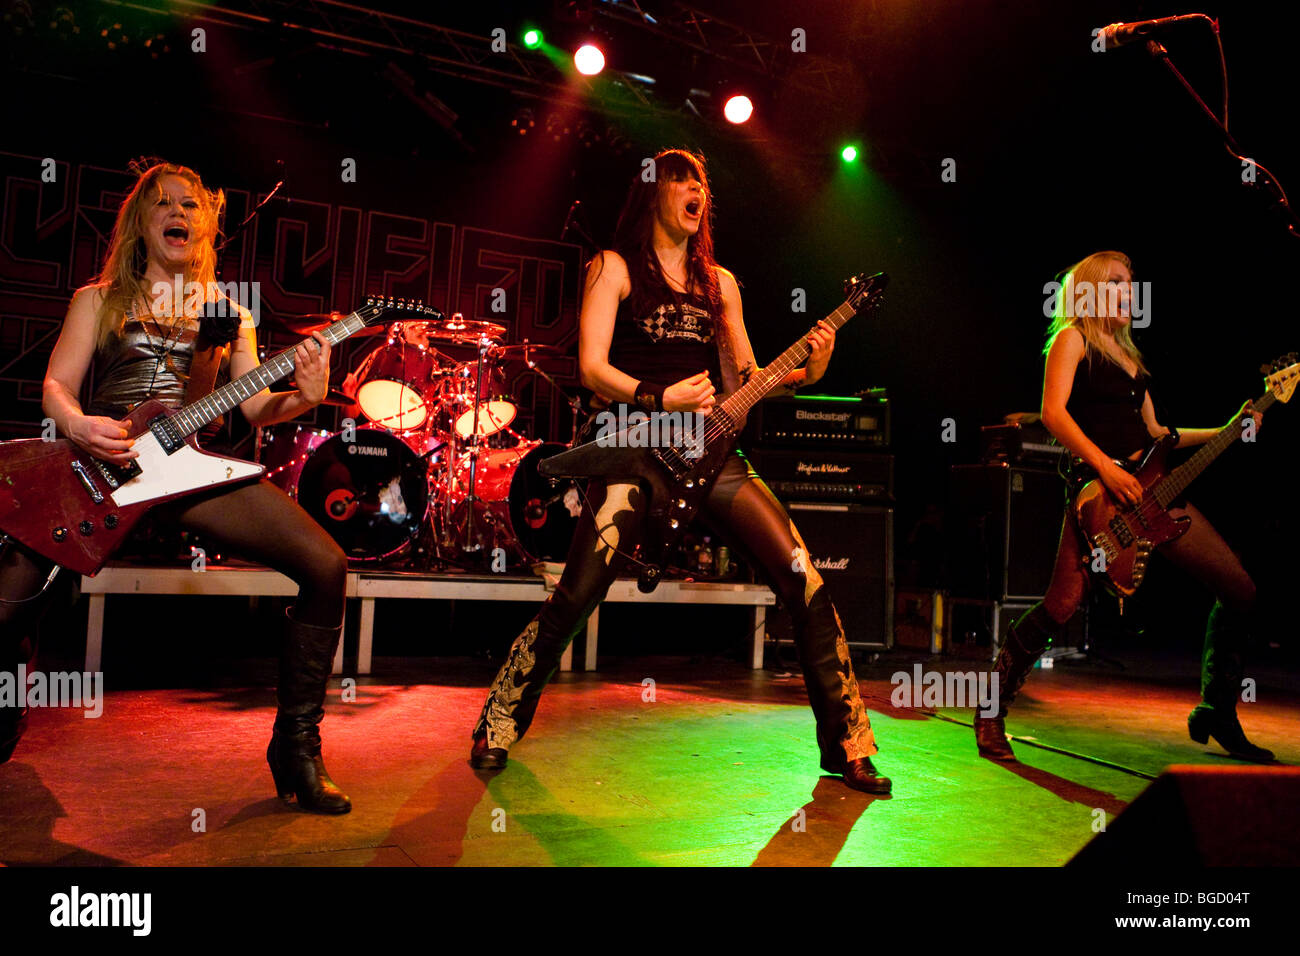 the swedish all female heavy metal band crucified barbara live in the stock photo royalty free. Black Bedroom Furniture Sets. Home Design Ideas